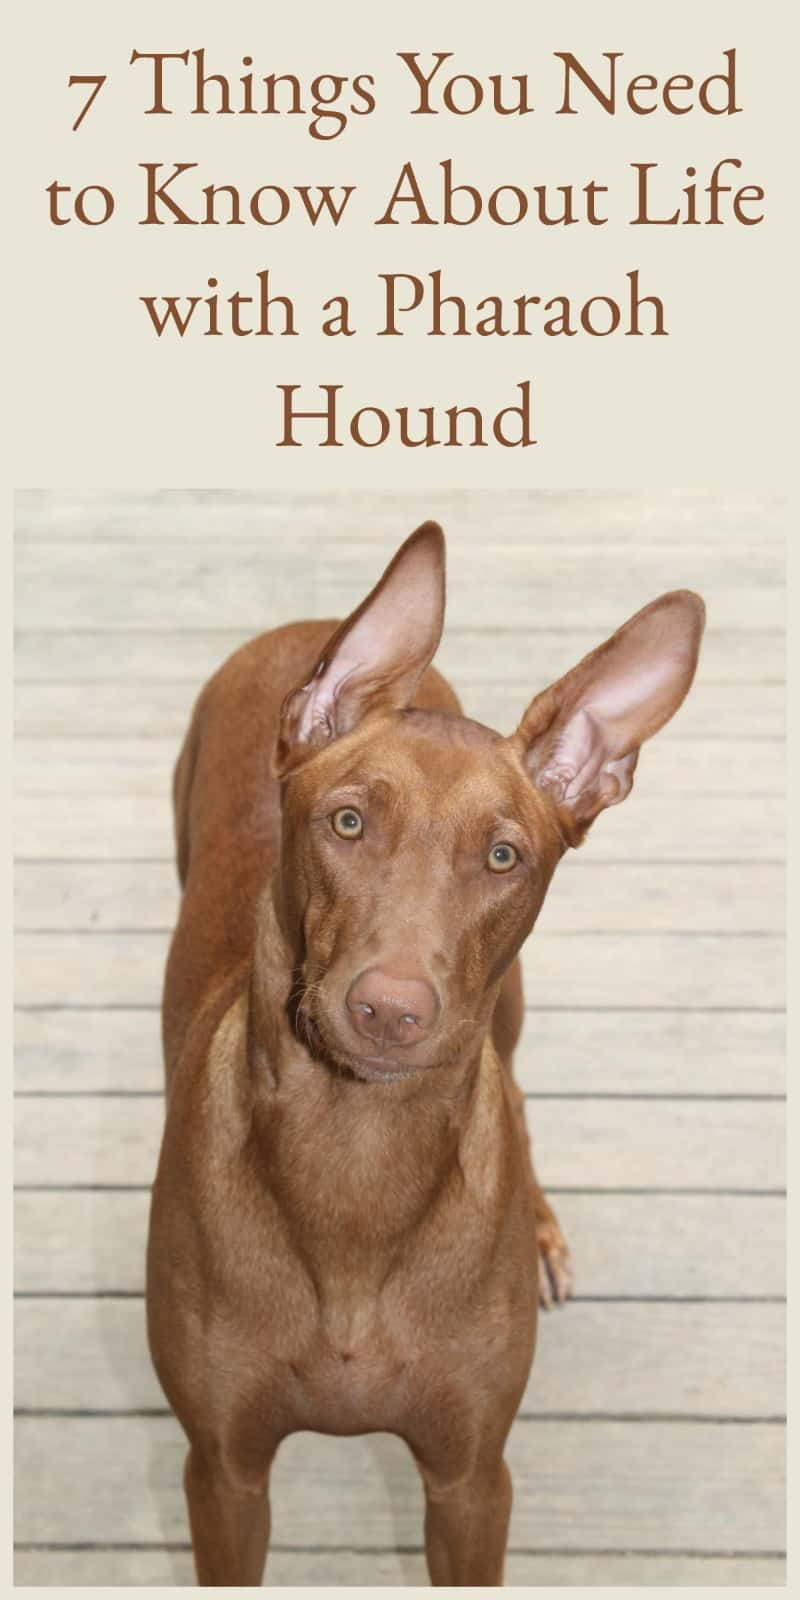 Thinking about getting a Pharaoh Hound? Make sure you\'re ready for the responsibility of owning the oldest dog breed! Check out 7 things you need to know!